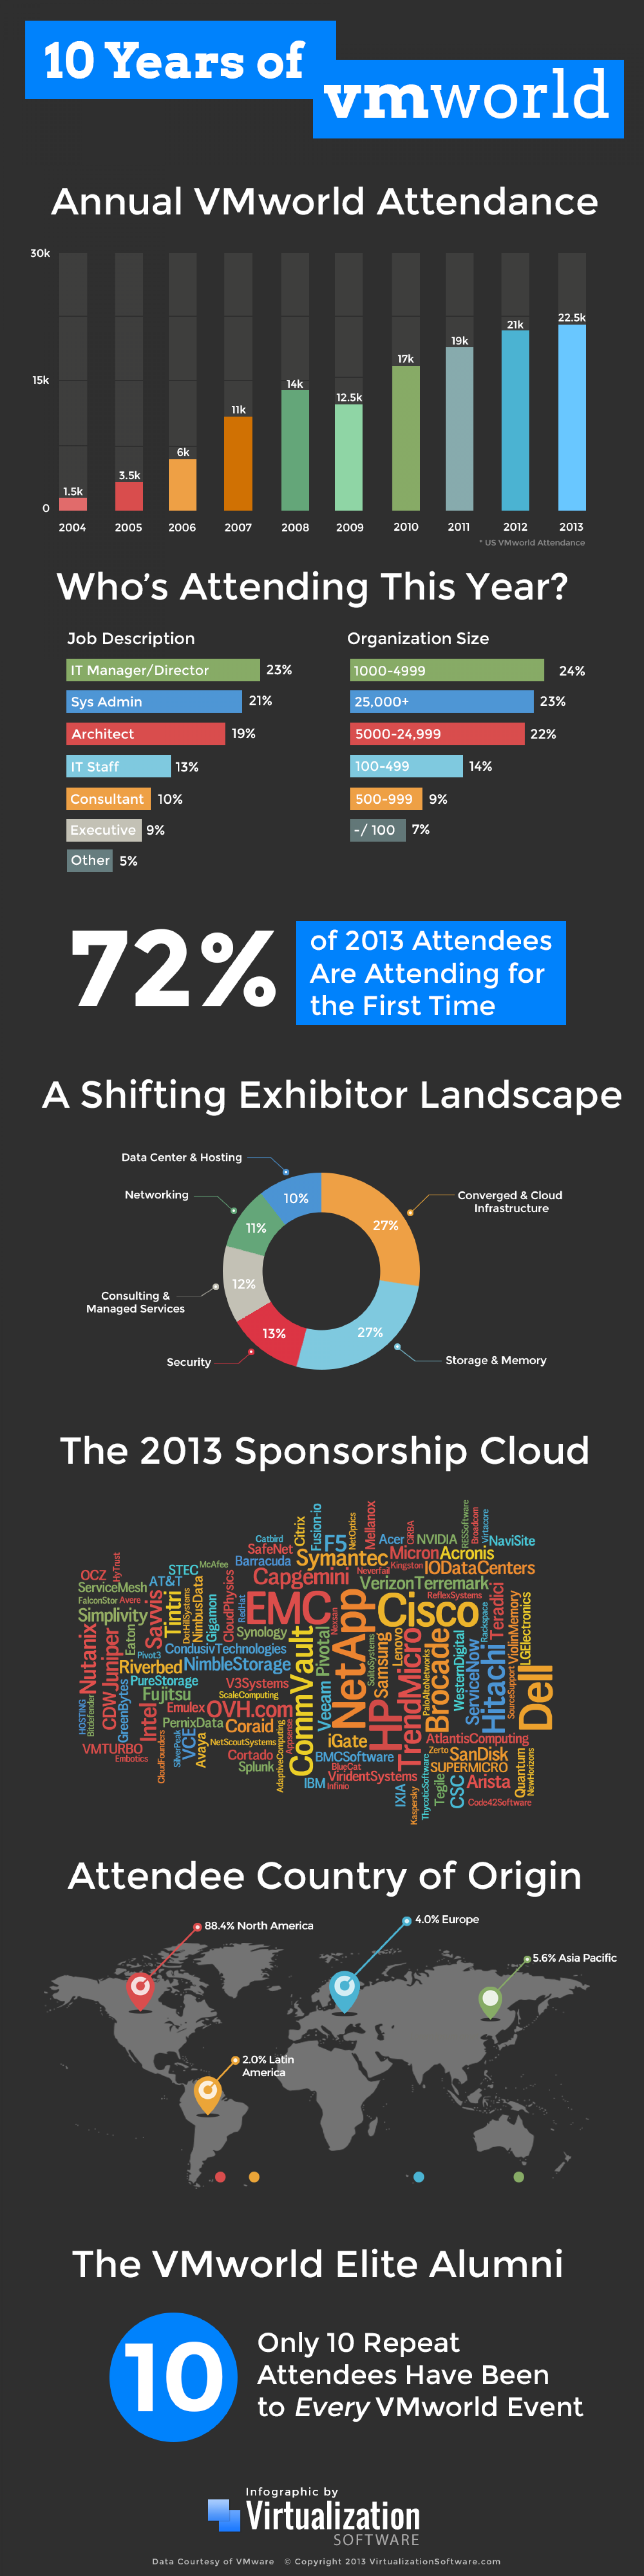 10 Years of VMware's VMworld Conference Infographic